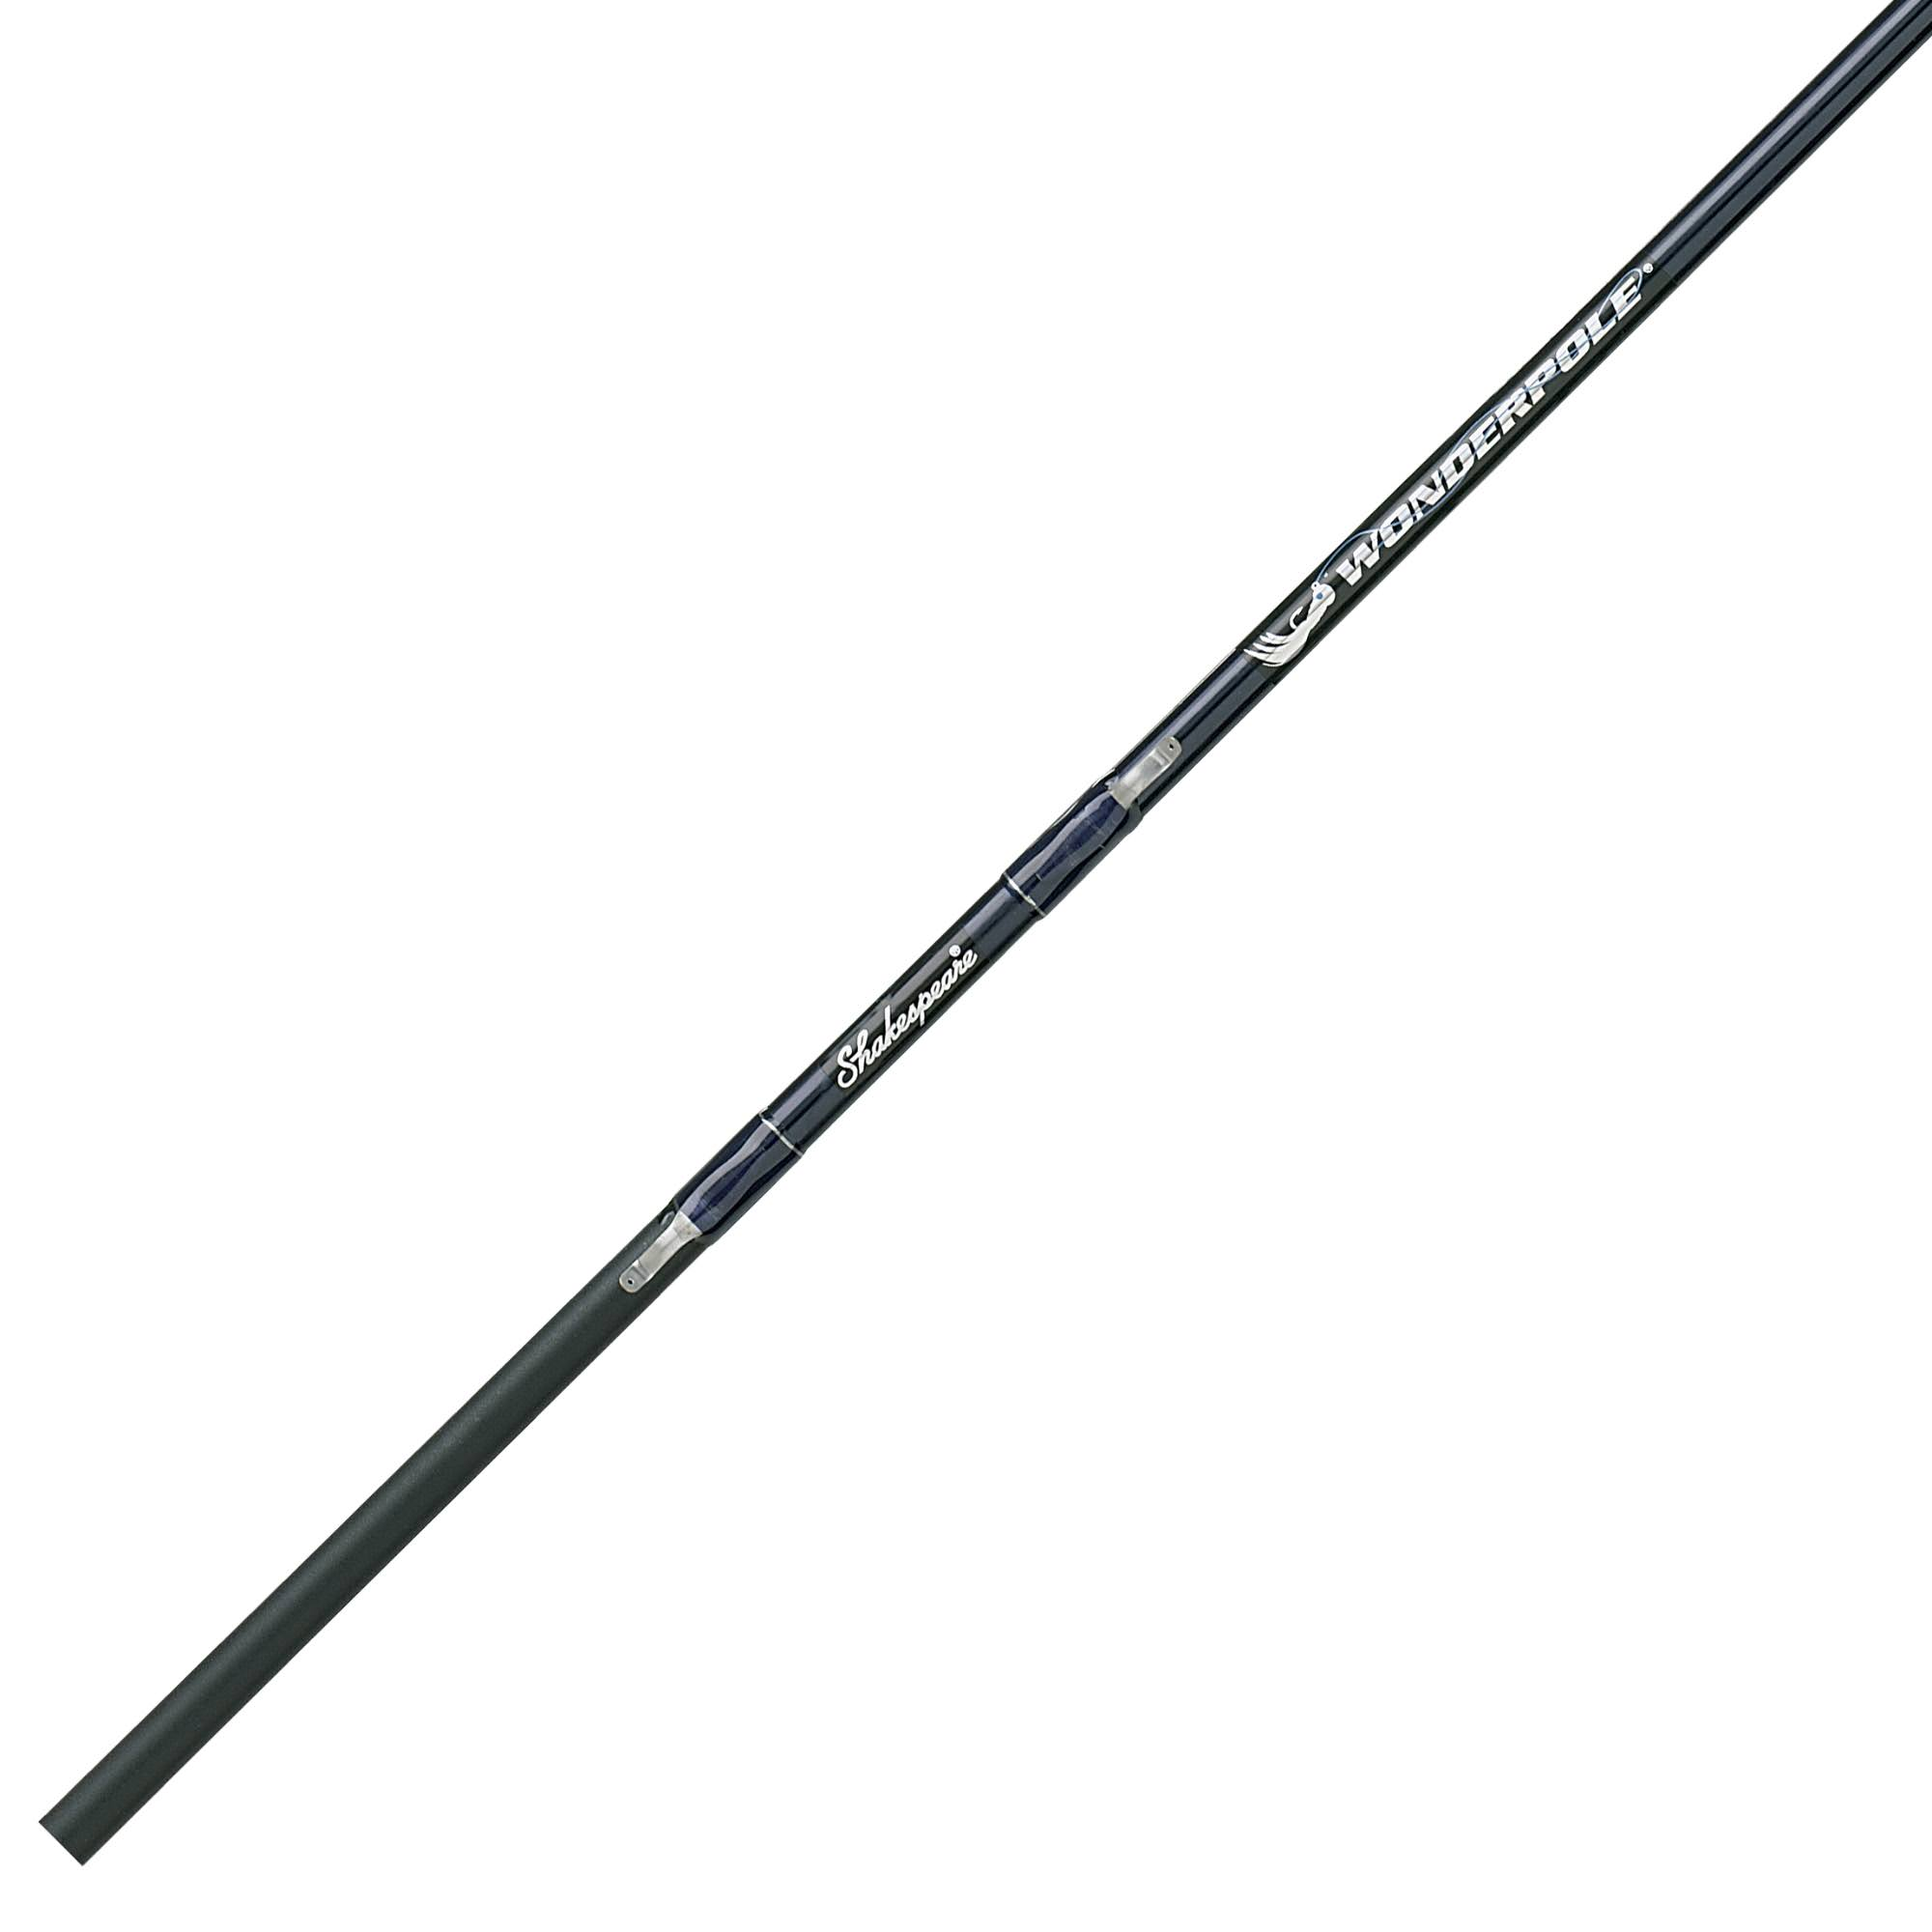 Shakespeare 16' Light Wonderpole Spinning Rod